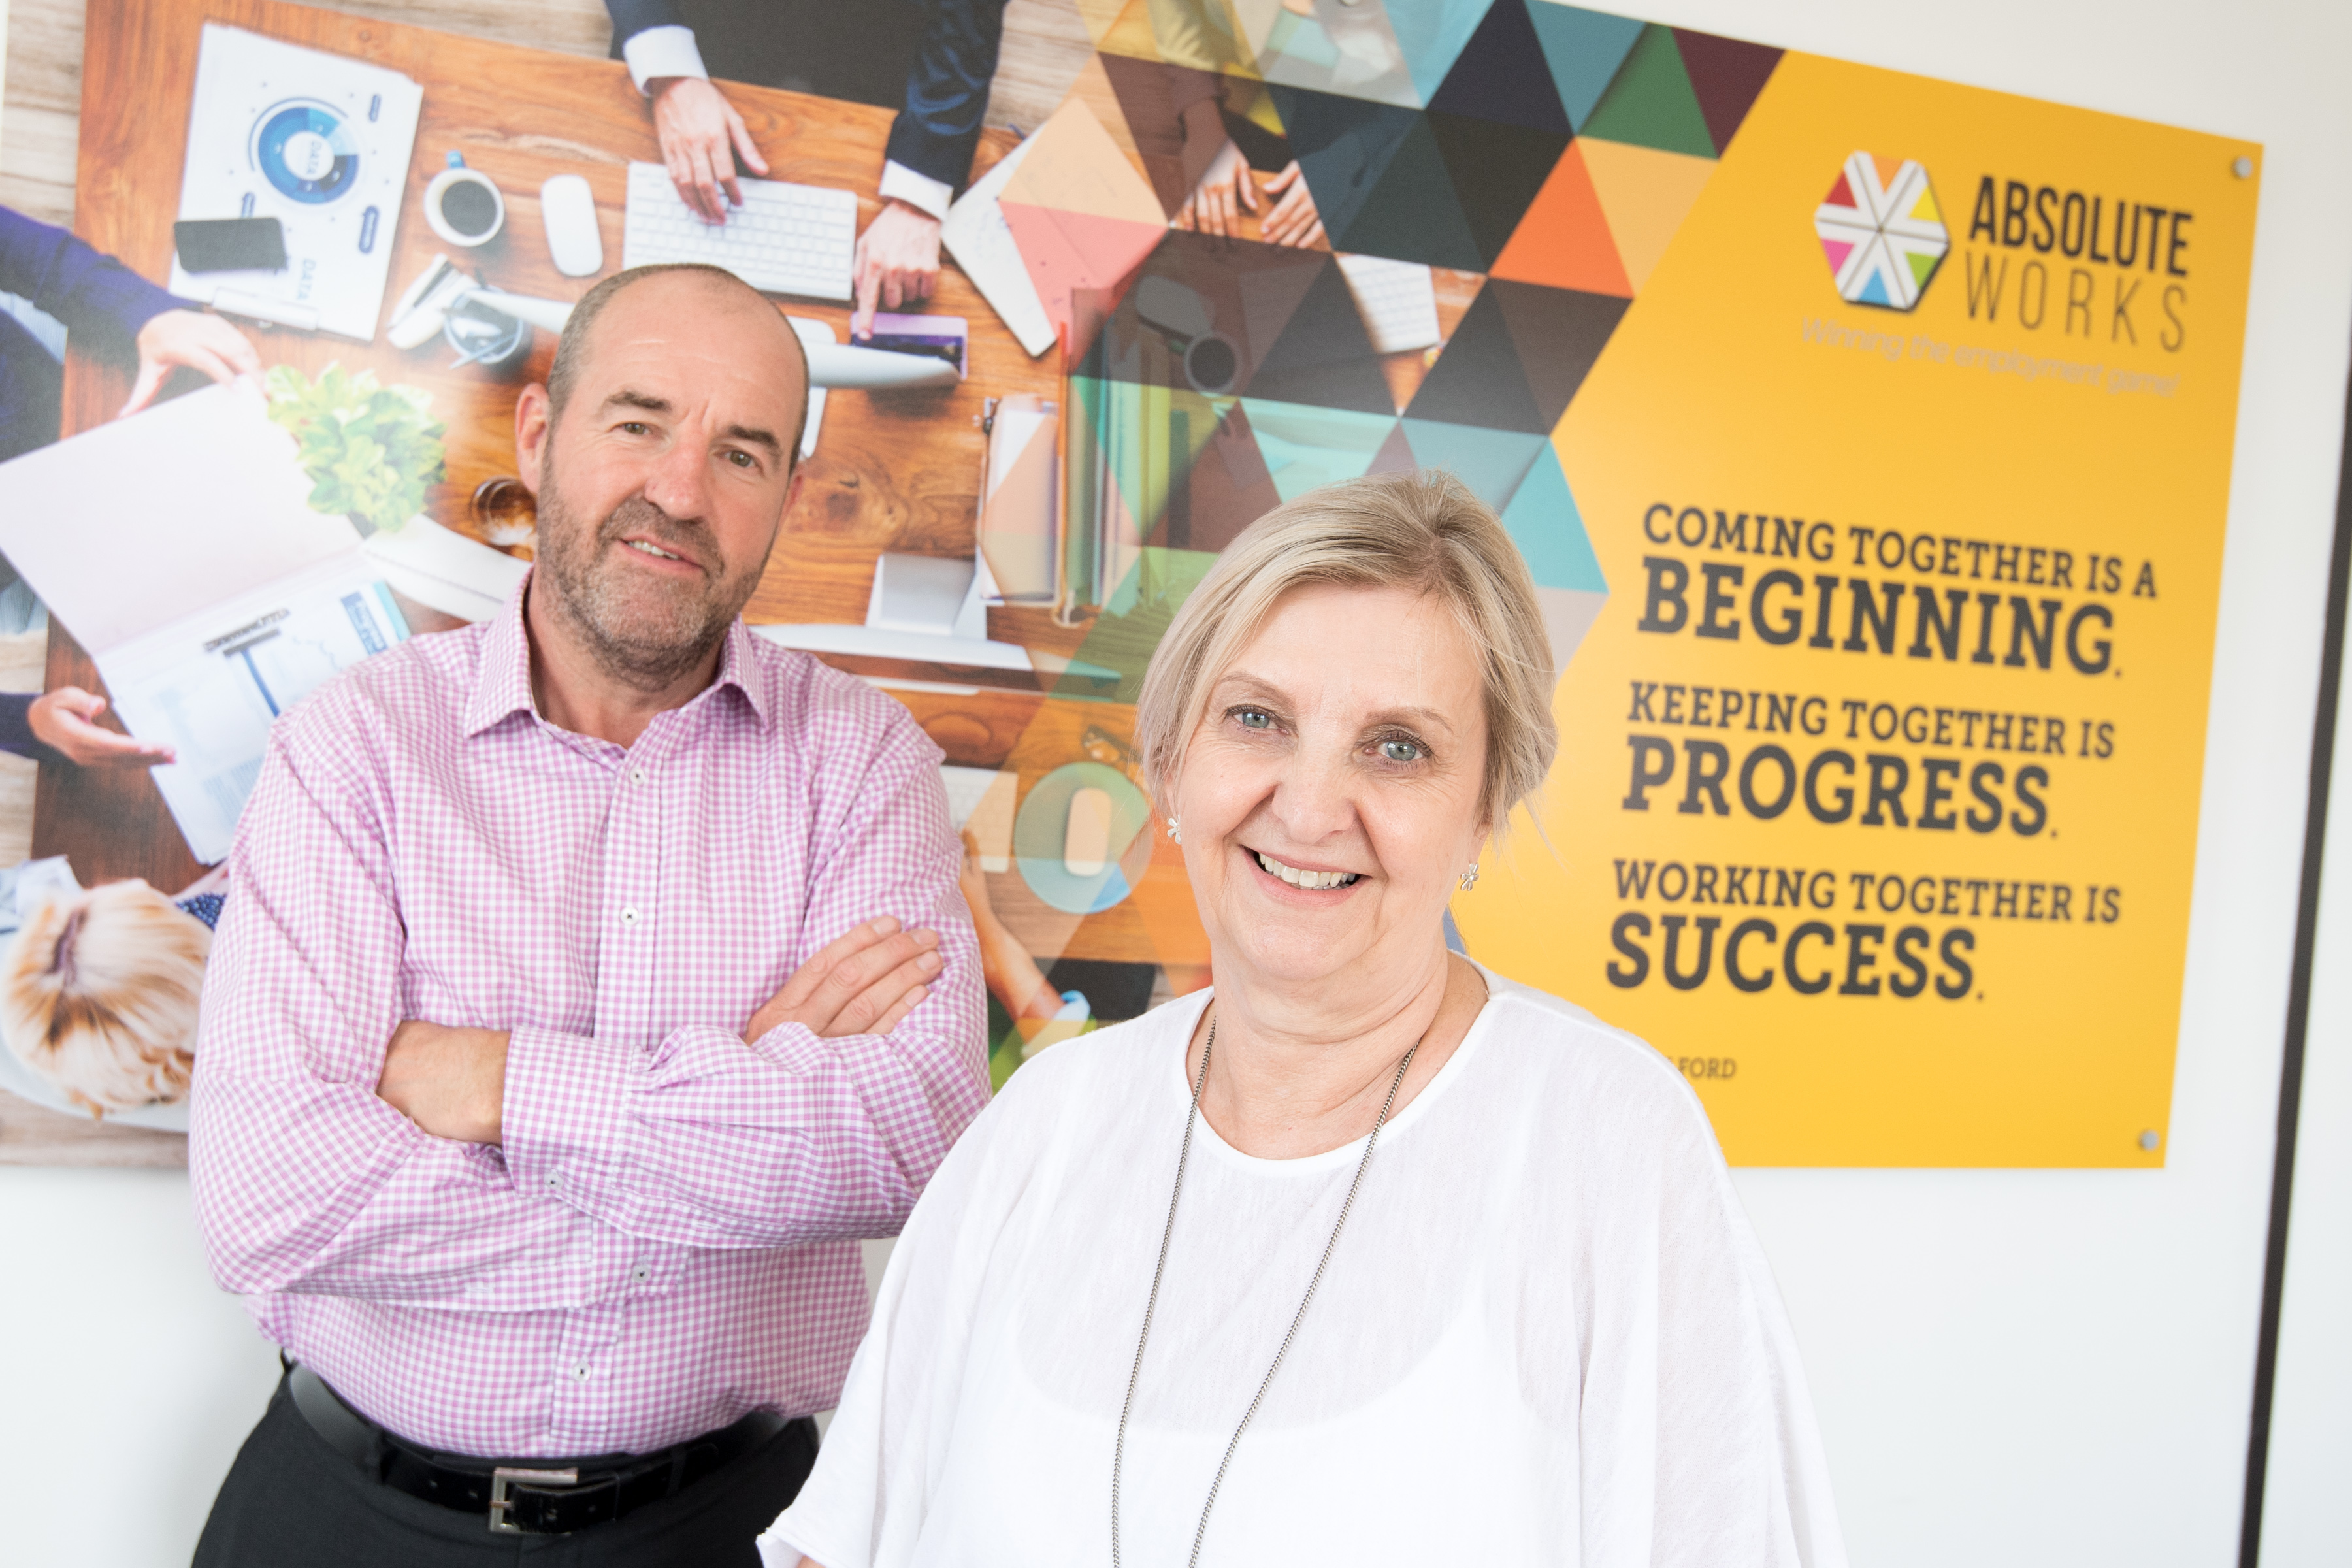 Business Ready supports Absolute Works' growth